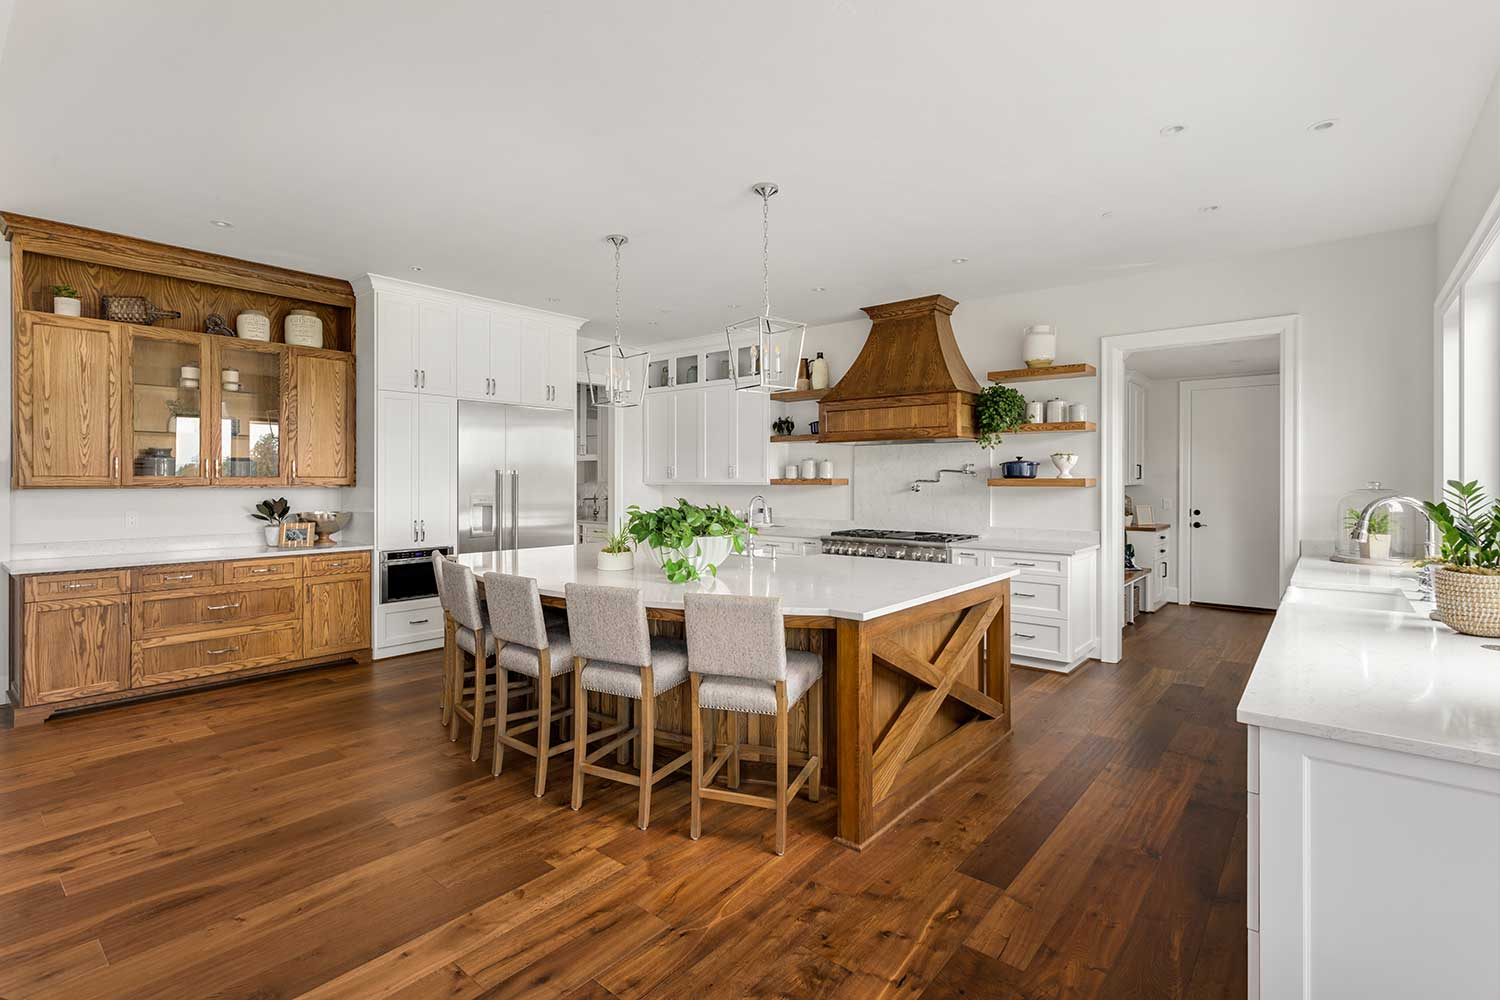 A kitchen with brown engineered hardwood flooring and white cabinets.